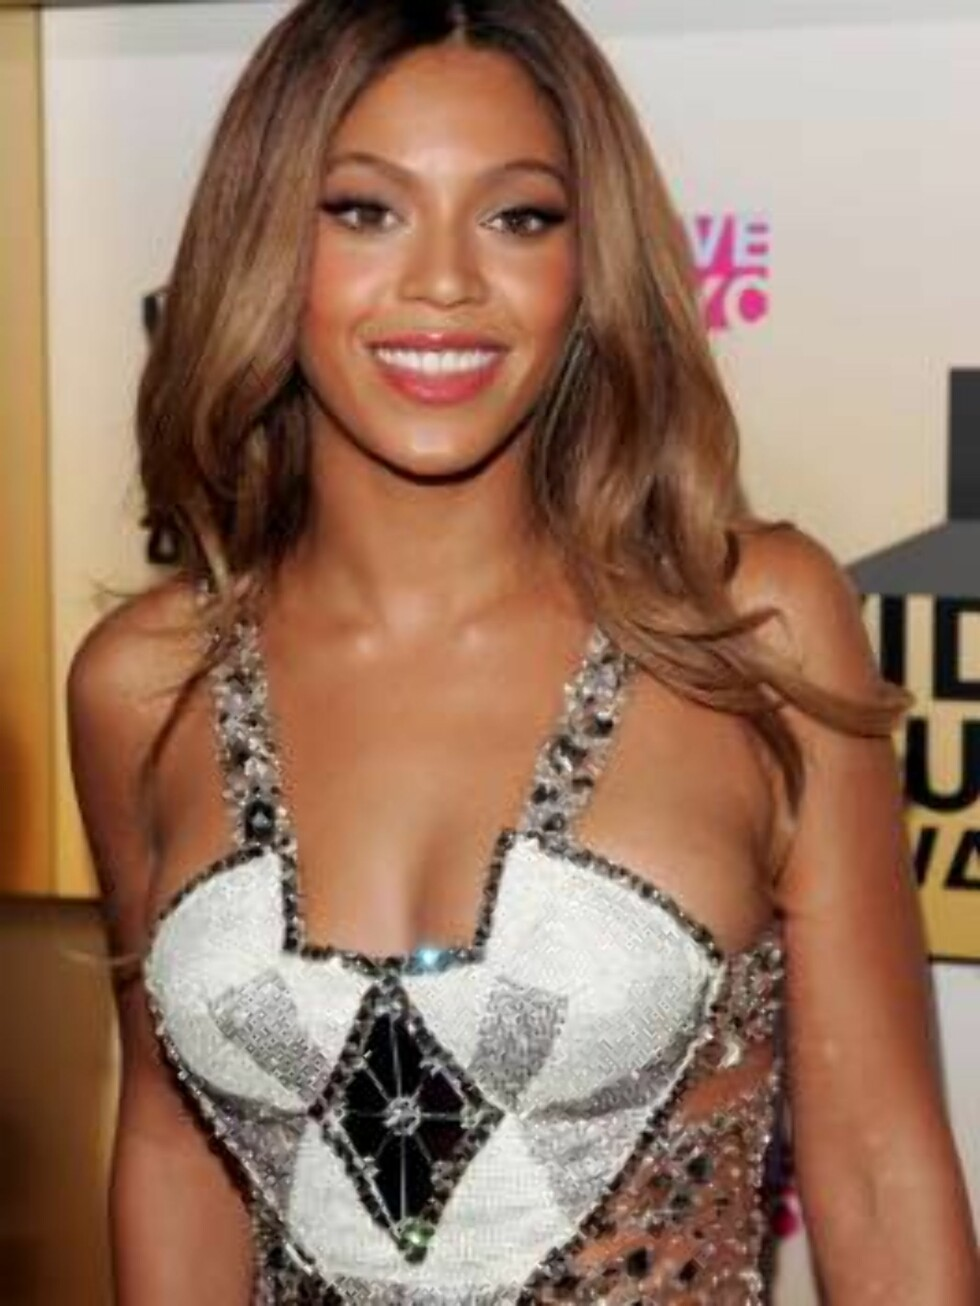 NEW YORK - AUGUST 31:  Singer Beyonce Knowles attends the 2006 MTV Video Music Awards at Radio City Music Hall August 31, 2006 in New York City.  (Photo by Peter Kramer/Getty Images) *** Local Caption *** Beyonce Knowles  * SPECIAL INSTRUCTIONS:  * *OBJEC Foto: All Over Press